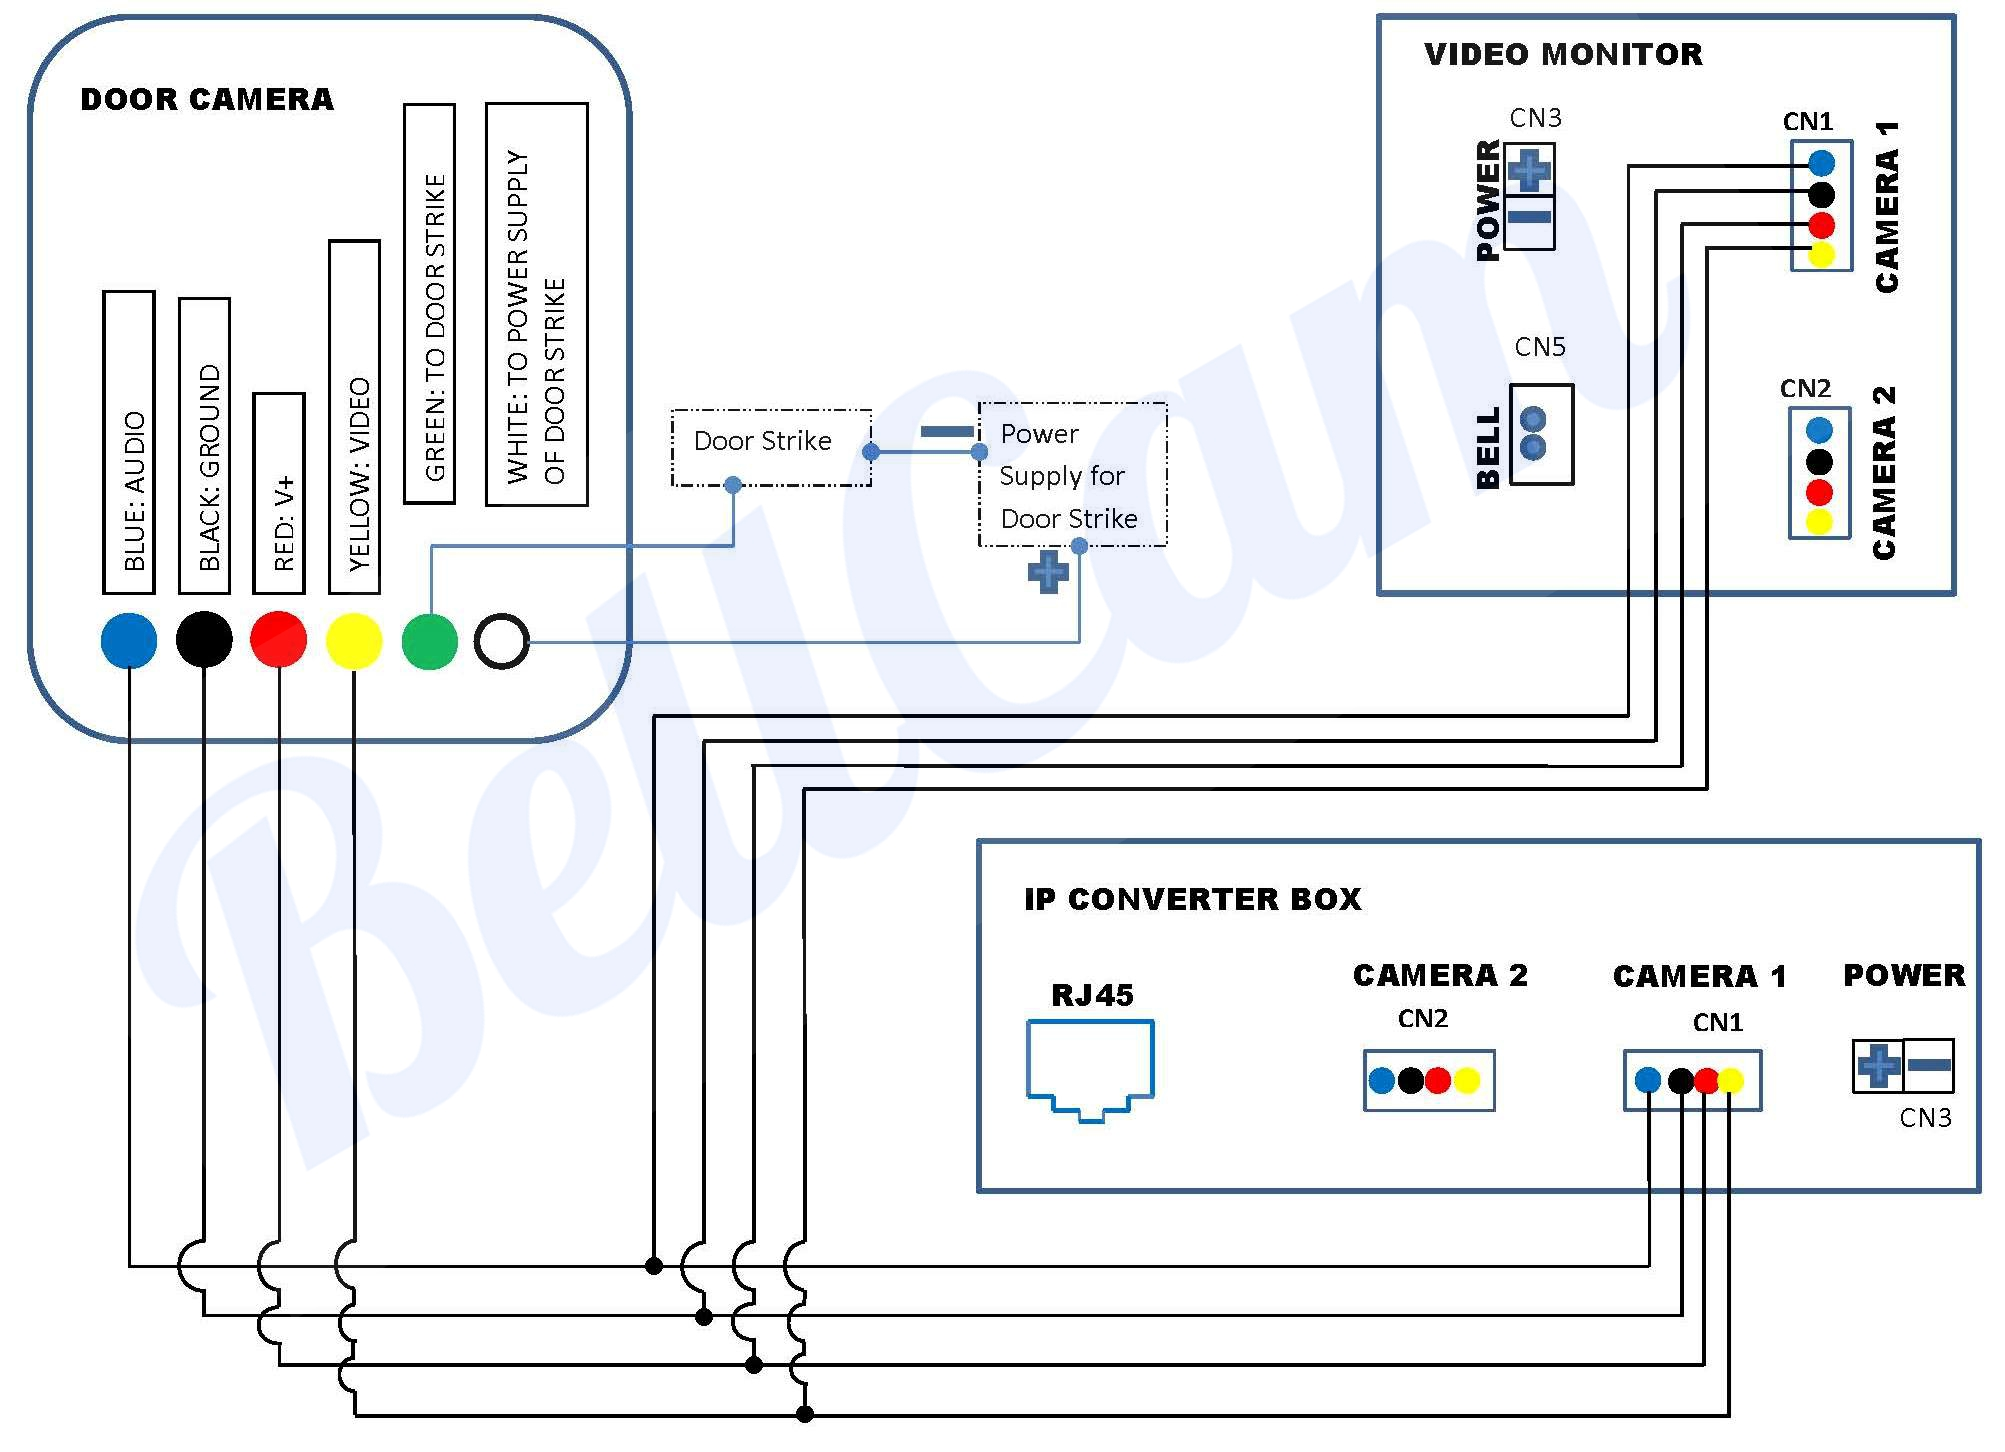 Wiring Diagram For Ip Cameras - Wiring Diagrams Word on